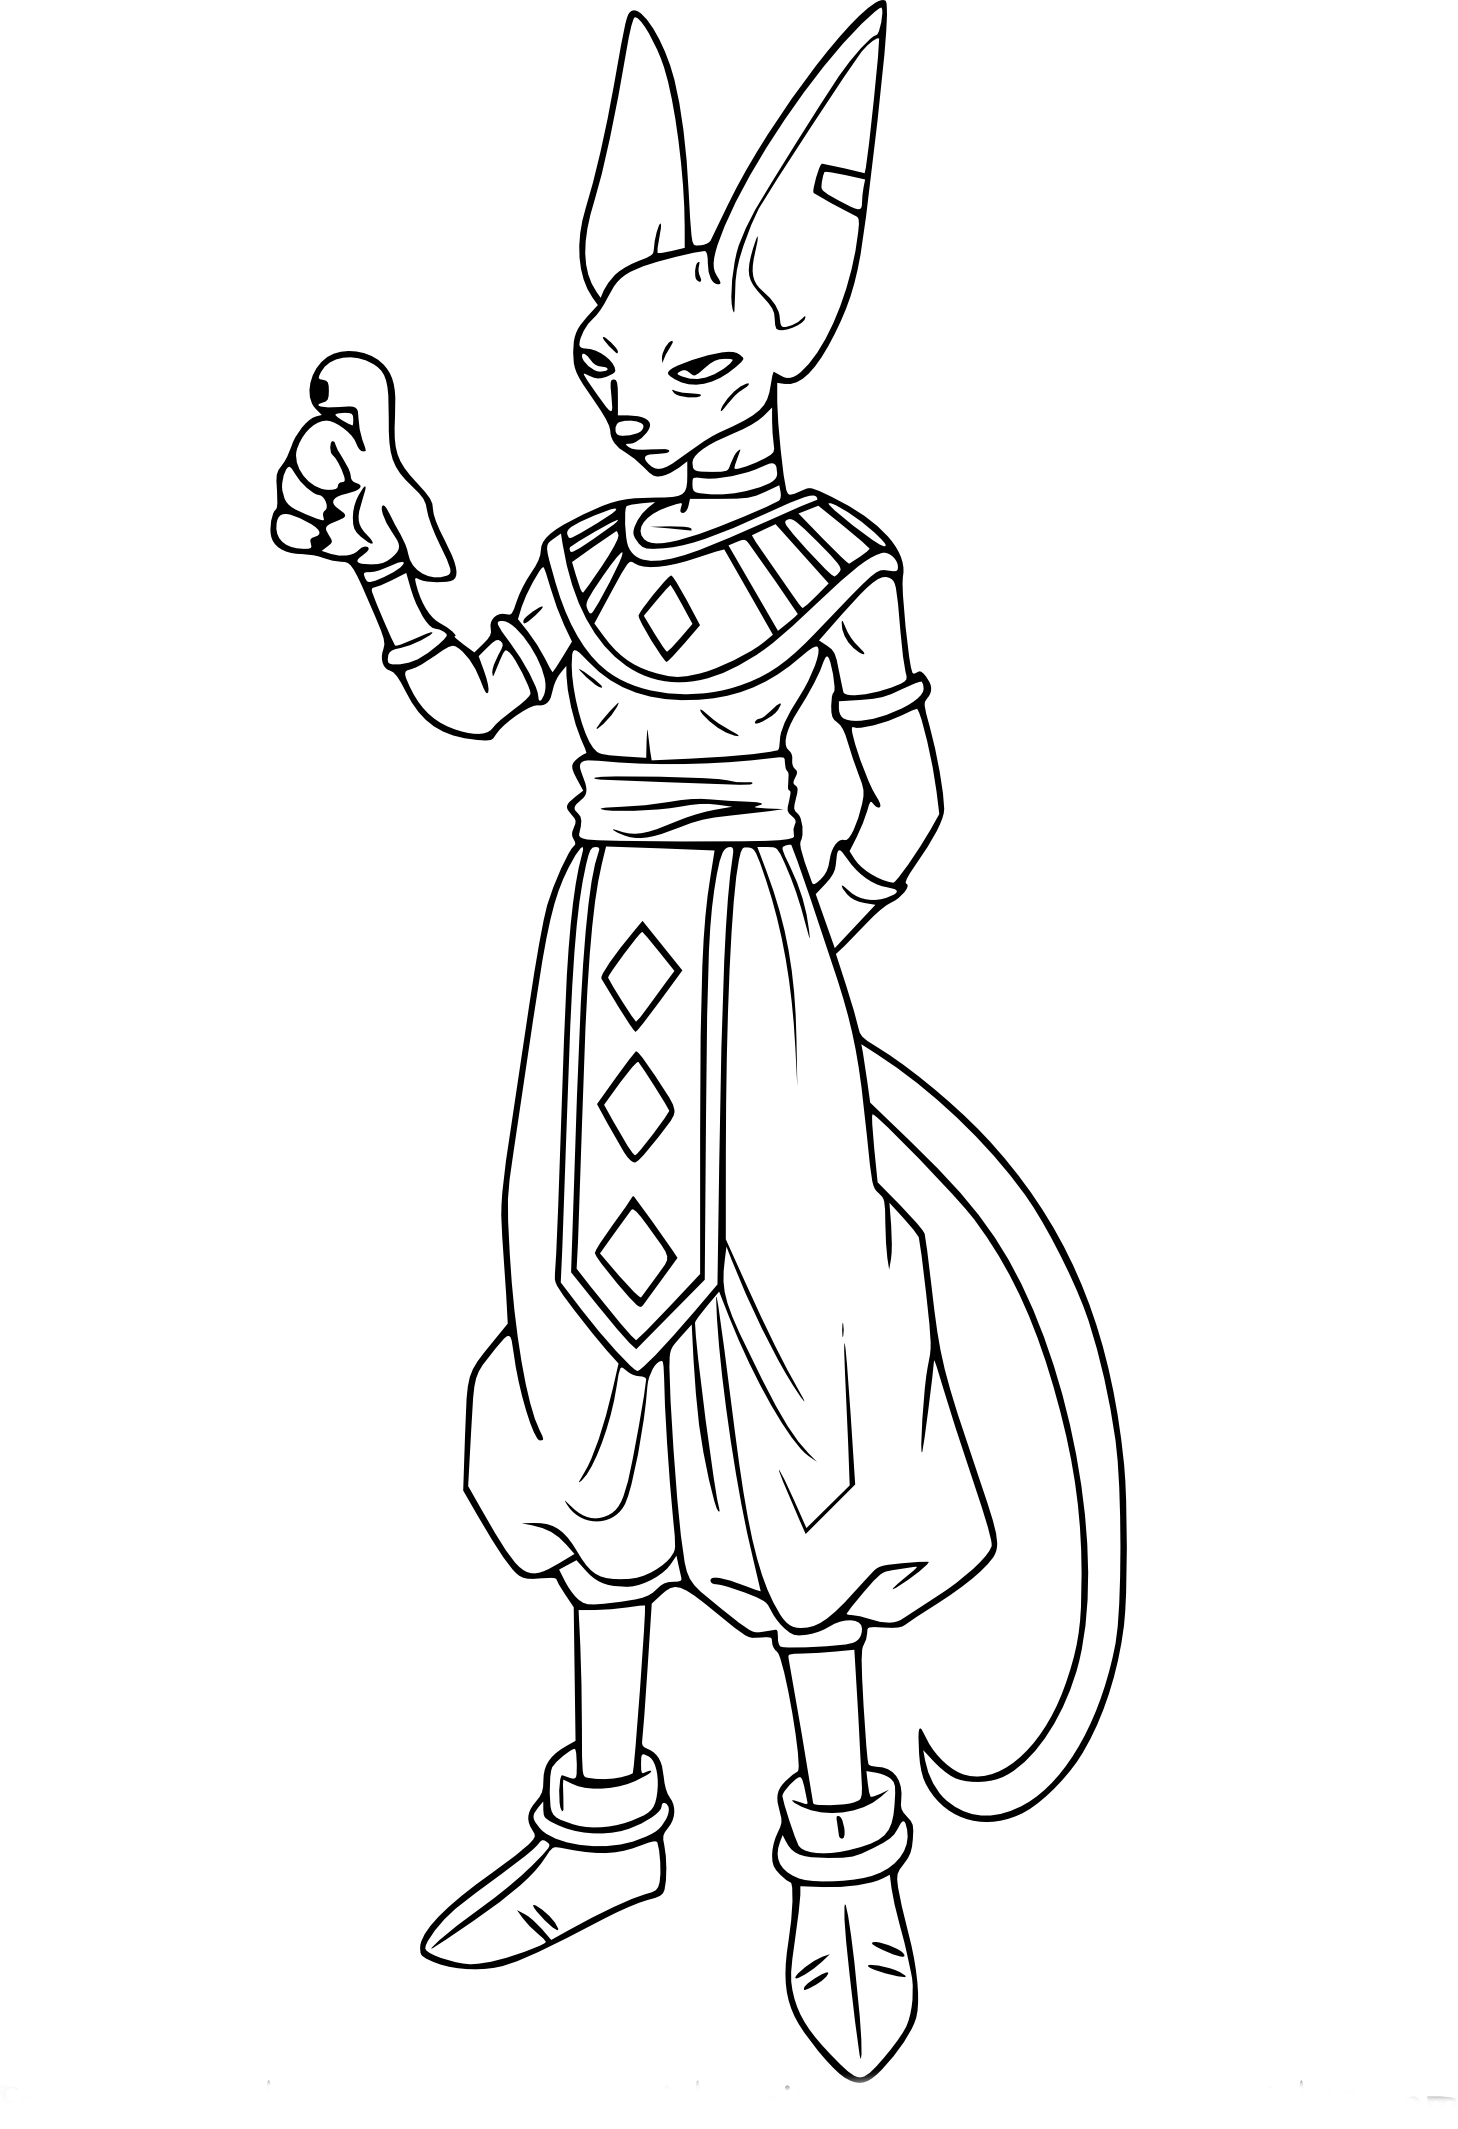 Coloriage dragon ball z beerus imprimer sur coloriages info - Dessin de dragon ball za imprimer ...